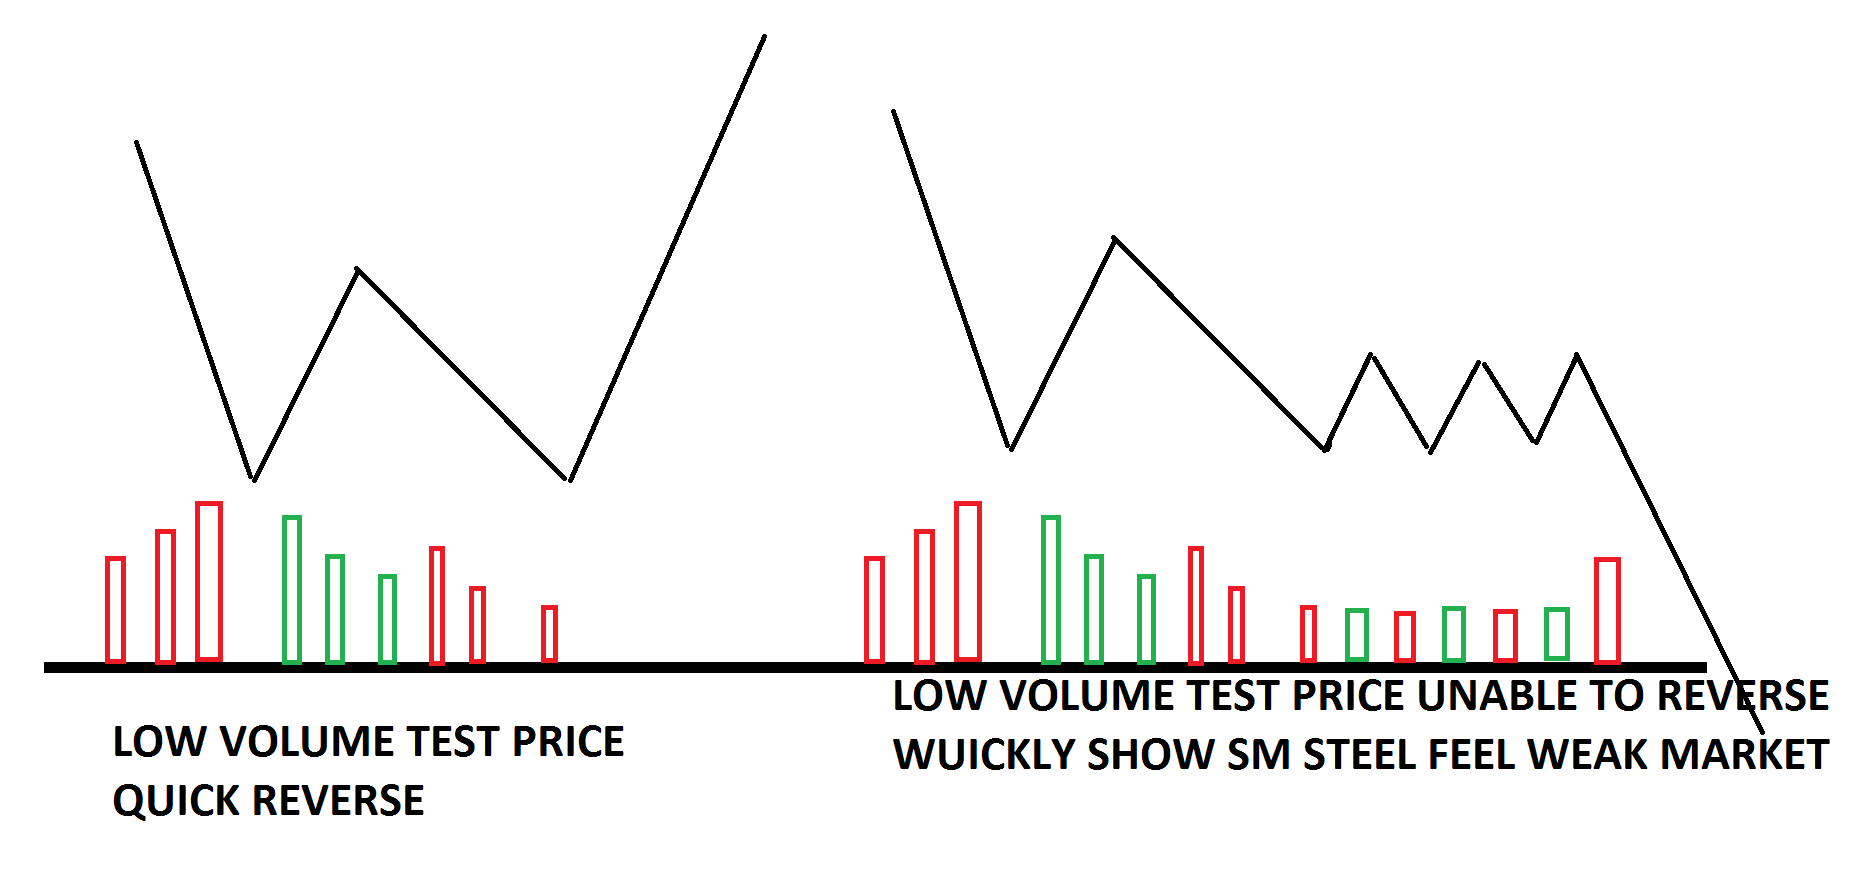 What price action should follow after successful test ?